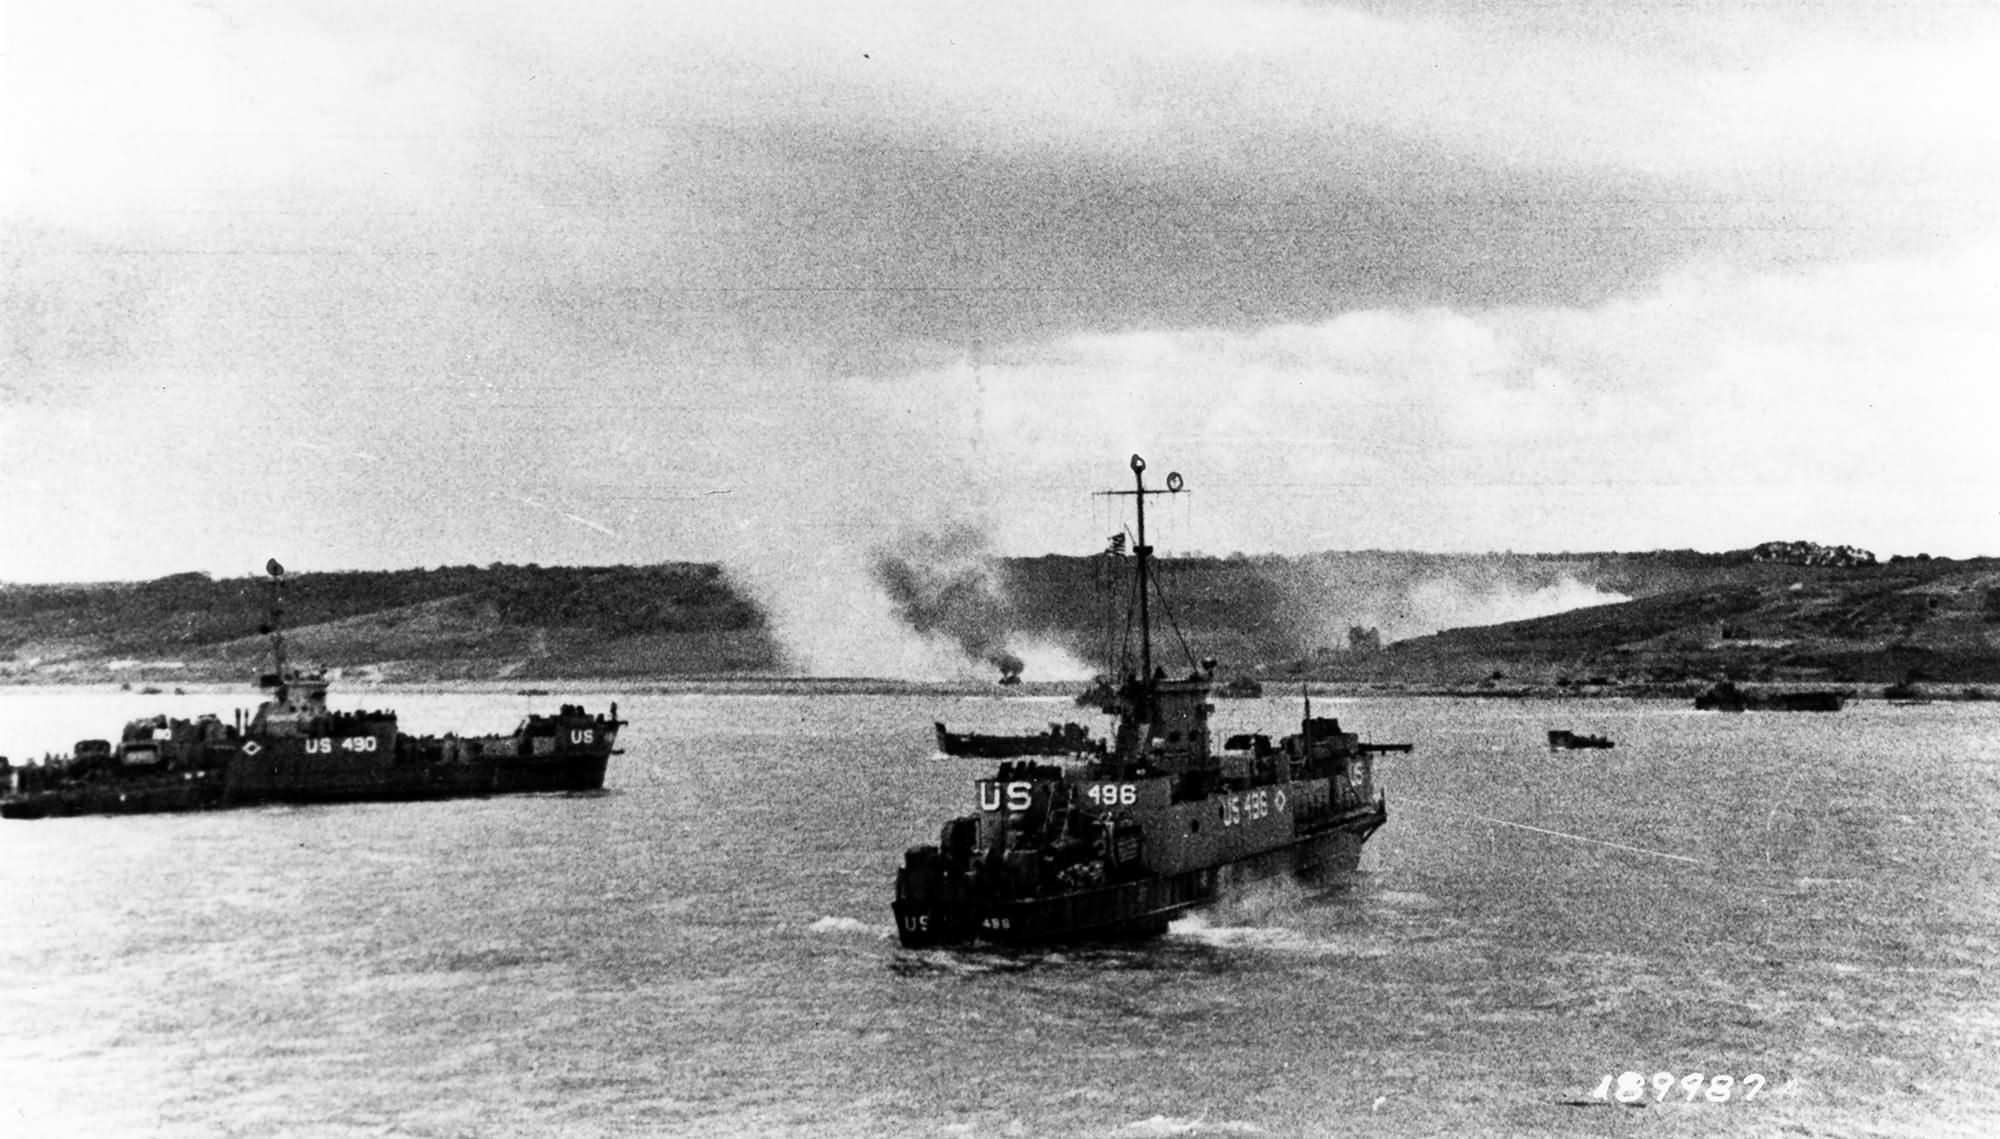 USS LCI(L)-490 and USS LCI(L)-496 approach Omaha Beach